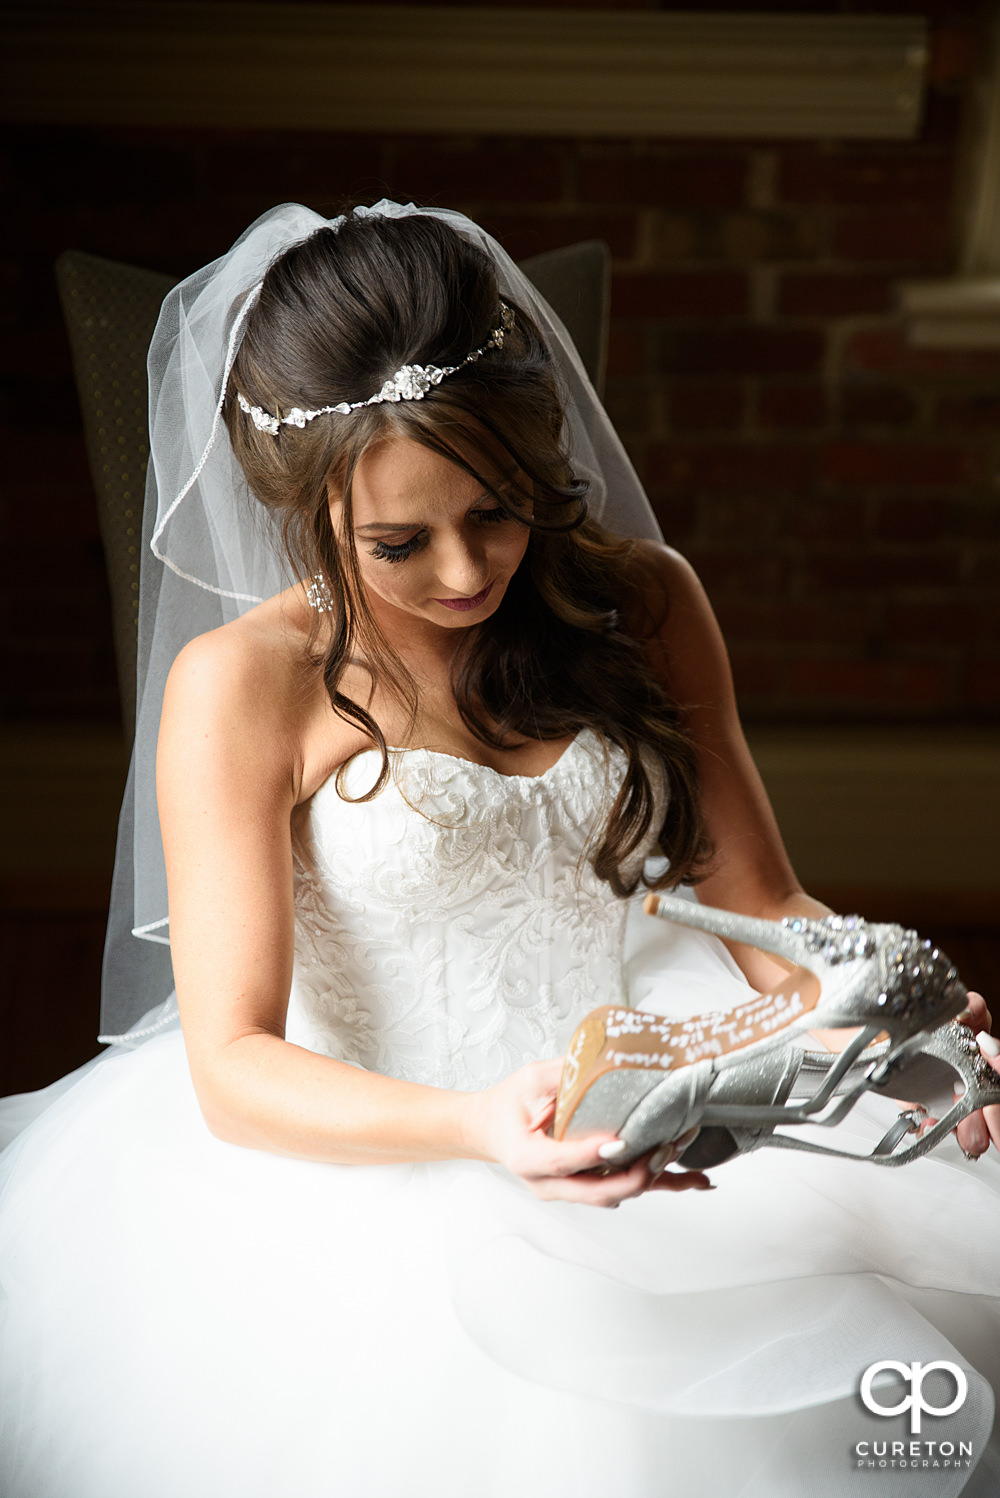 Bride reading a note left on her shoes.